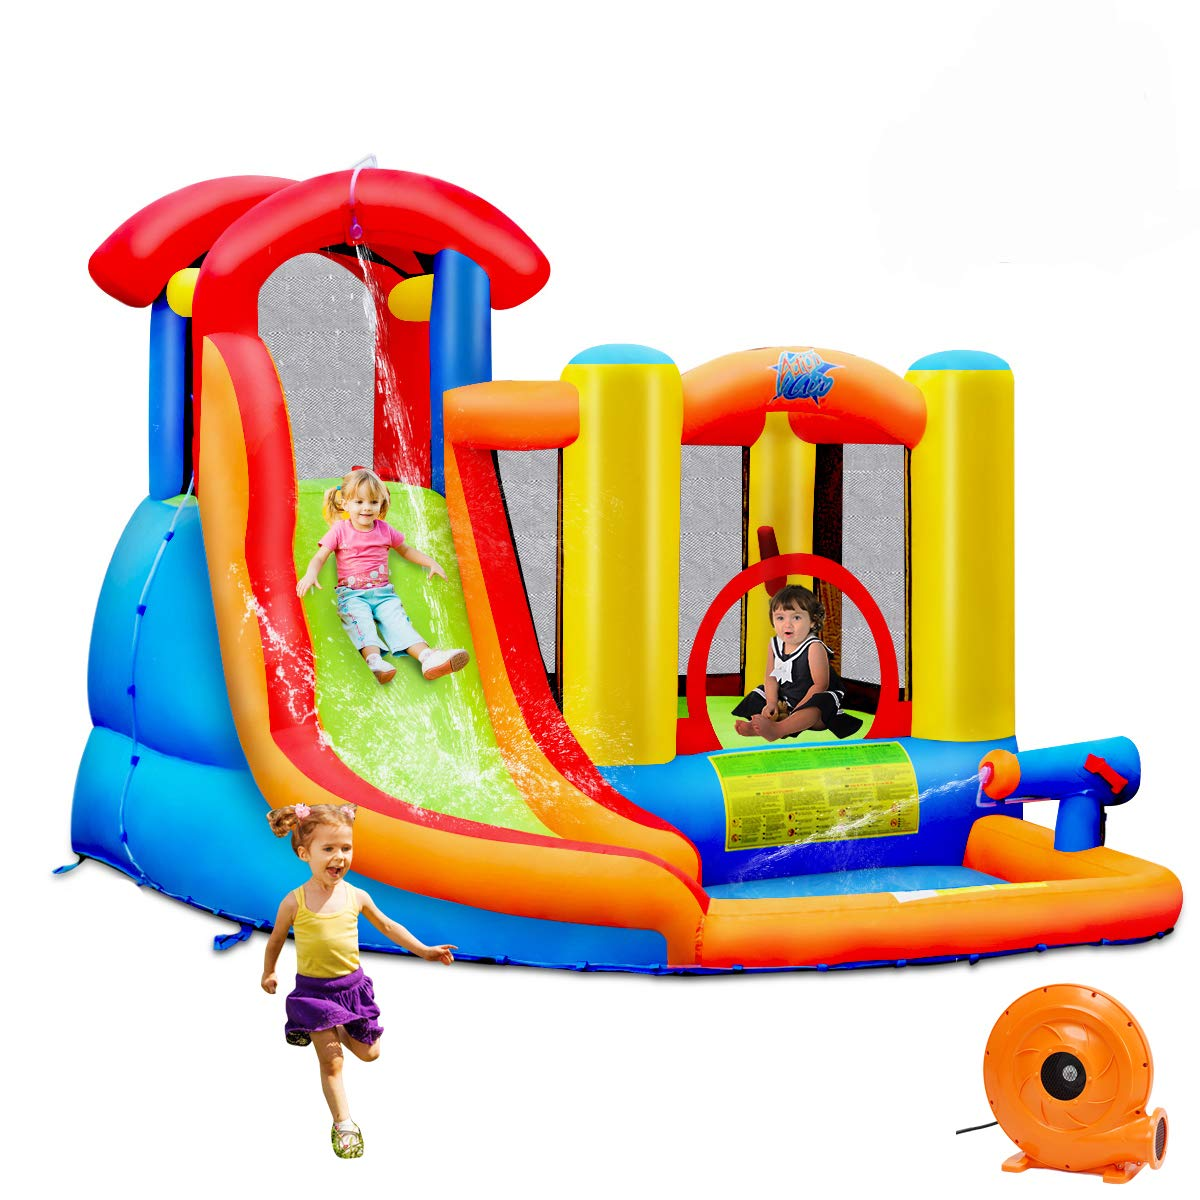 BOUNTECH Inflatable Bounce House, 6 in 1 Water Slide Jumping Park w/Splashing Pool, Climbing Wall, Water Cannon, Basketball Scoop, Including Carry Bag, Stakes, Repair Kit, Hose (with 740W Air Blower)